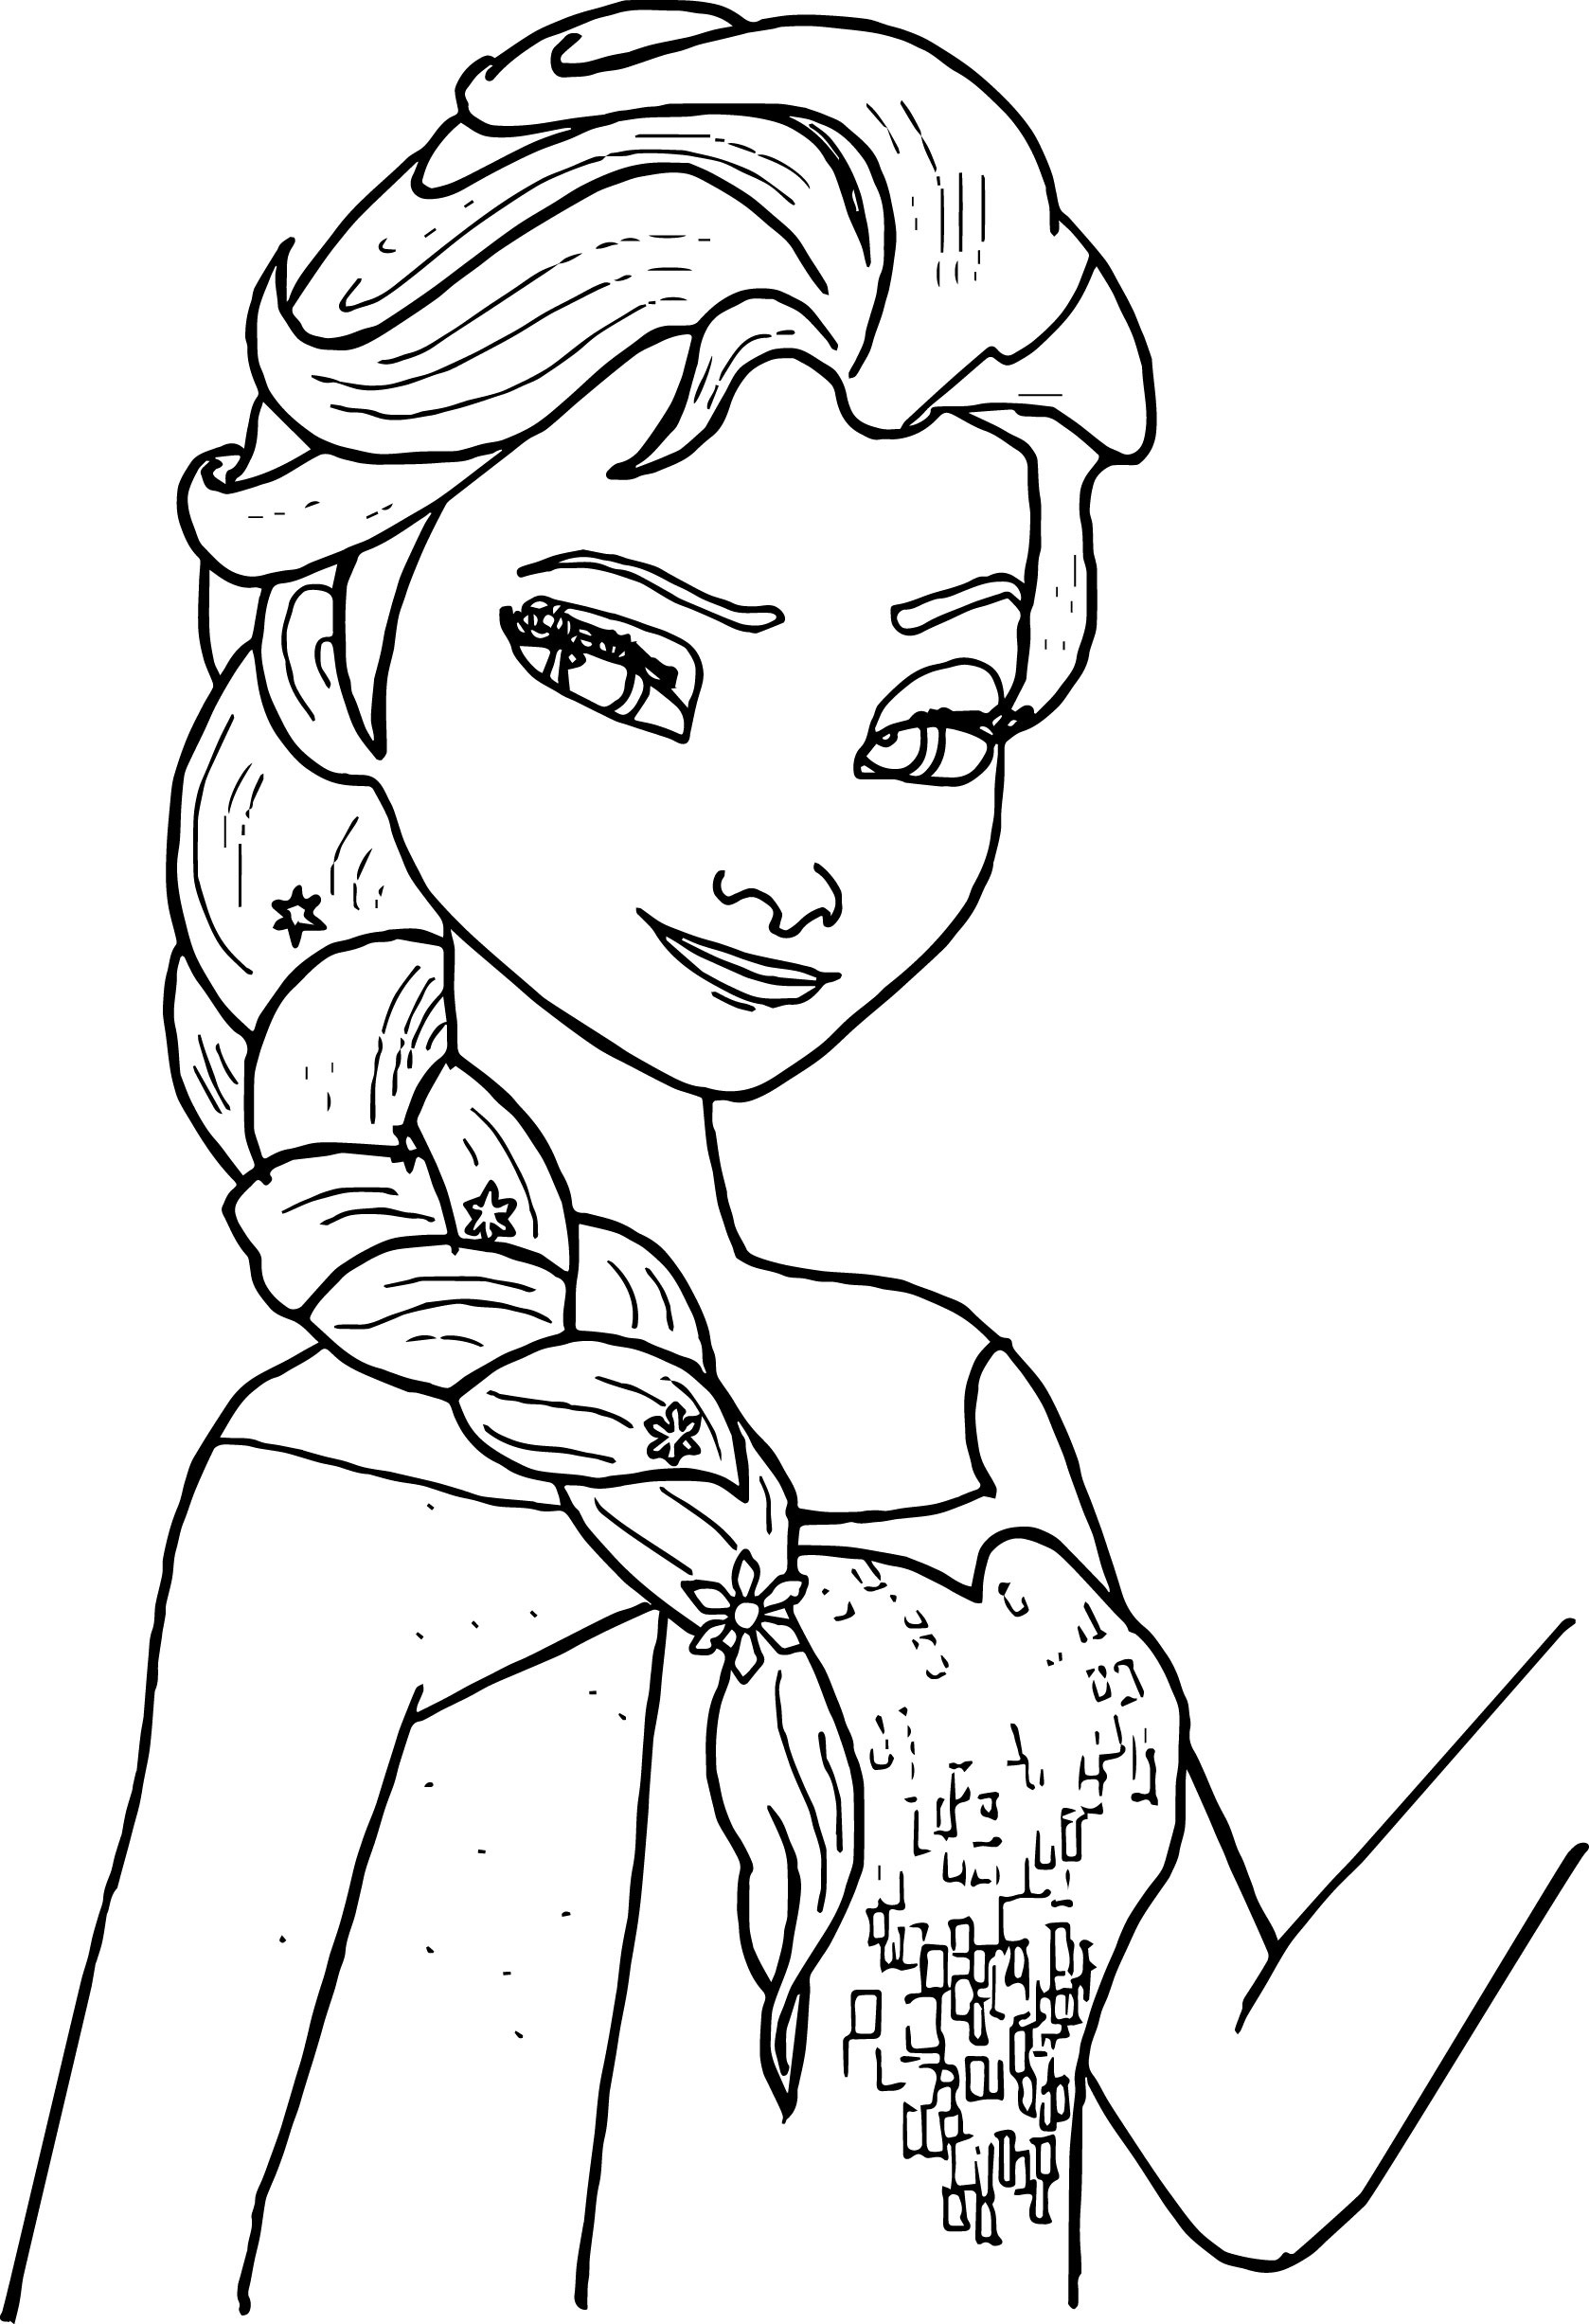 Elsa Printable Coloring Pages - Free Printable Elsa Coloring Pages for Kids Best